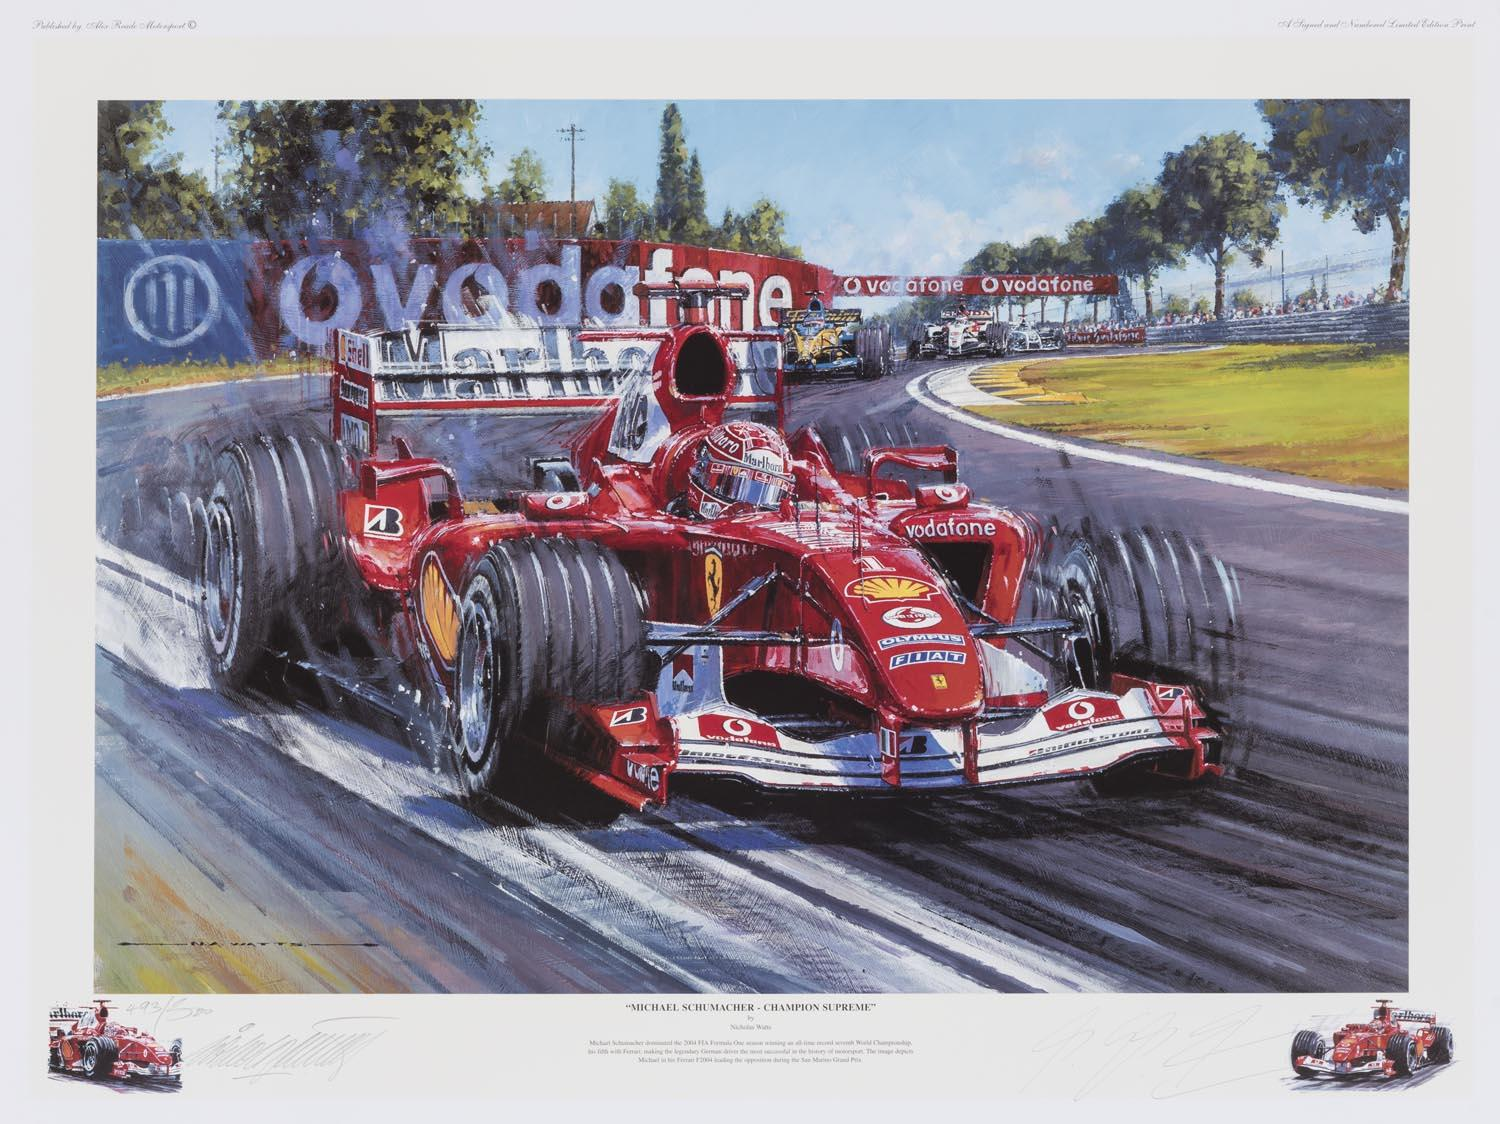 "Michael Schumacher ""Champion Supreme"" 2004 Print, Personally Signed by MS and the Artist, Ltd Ed"